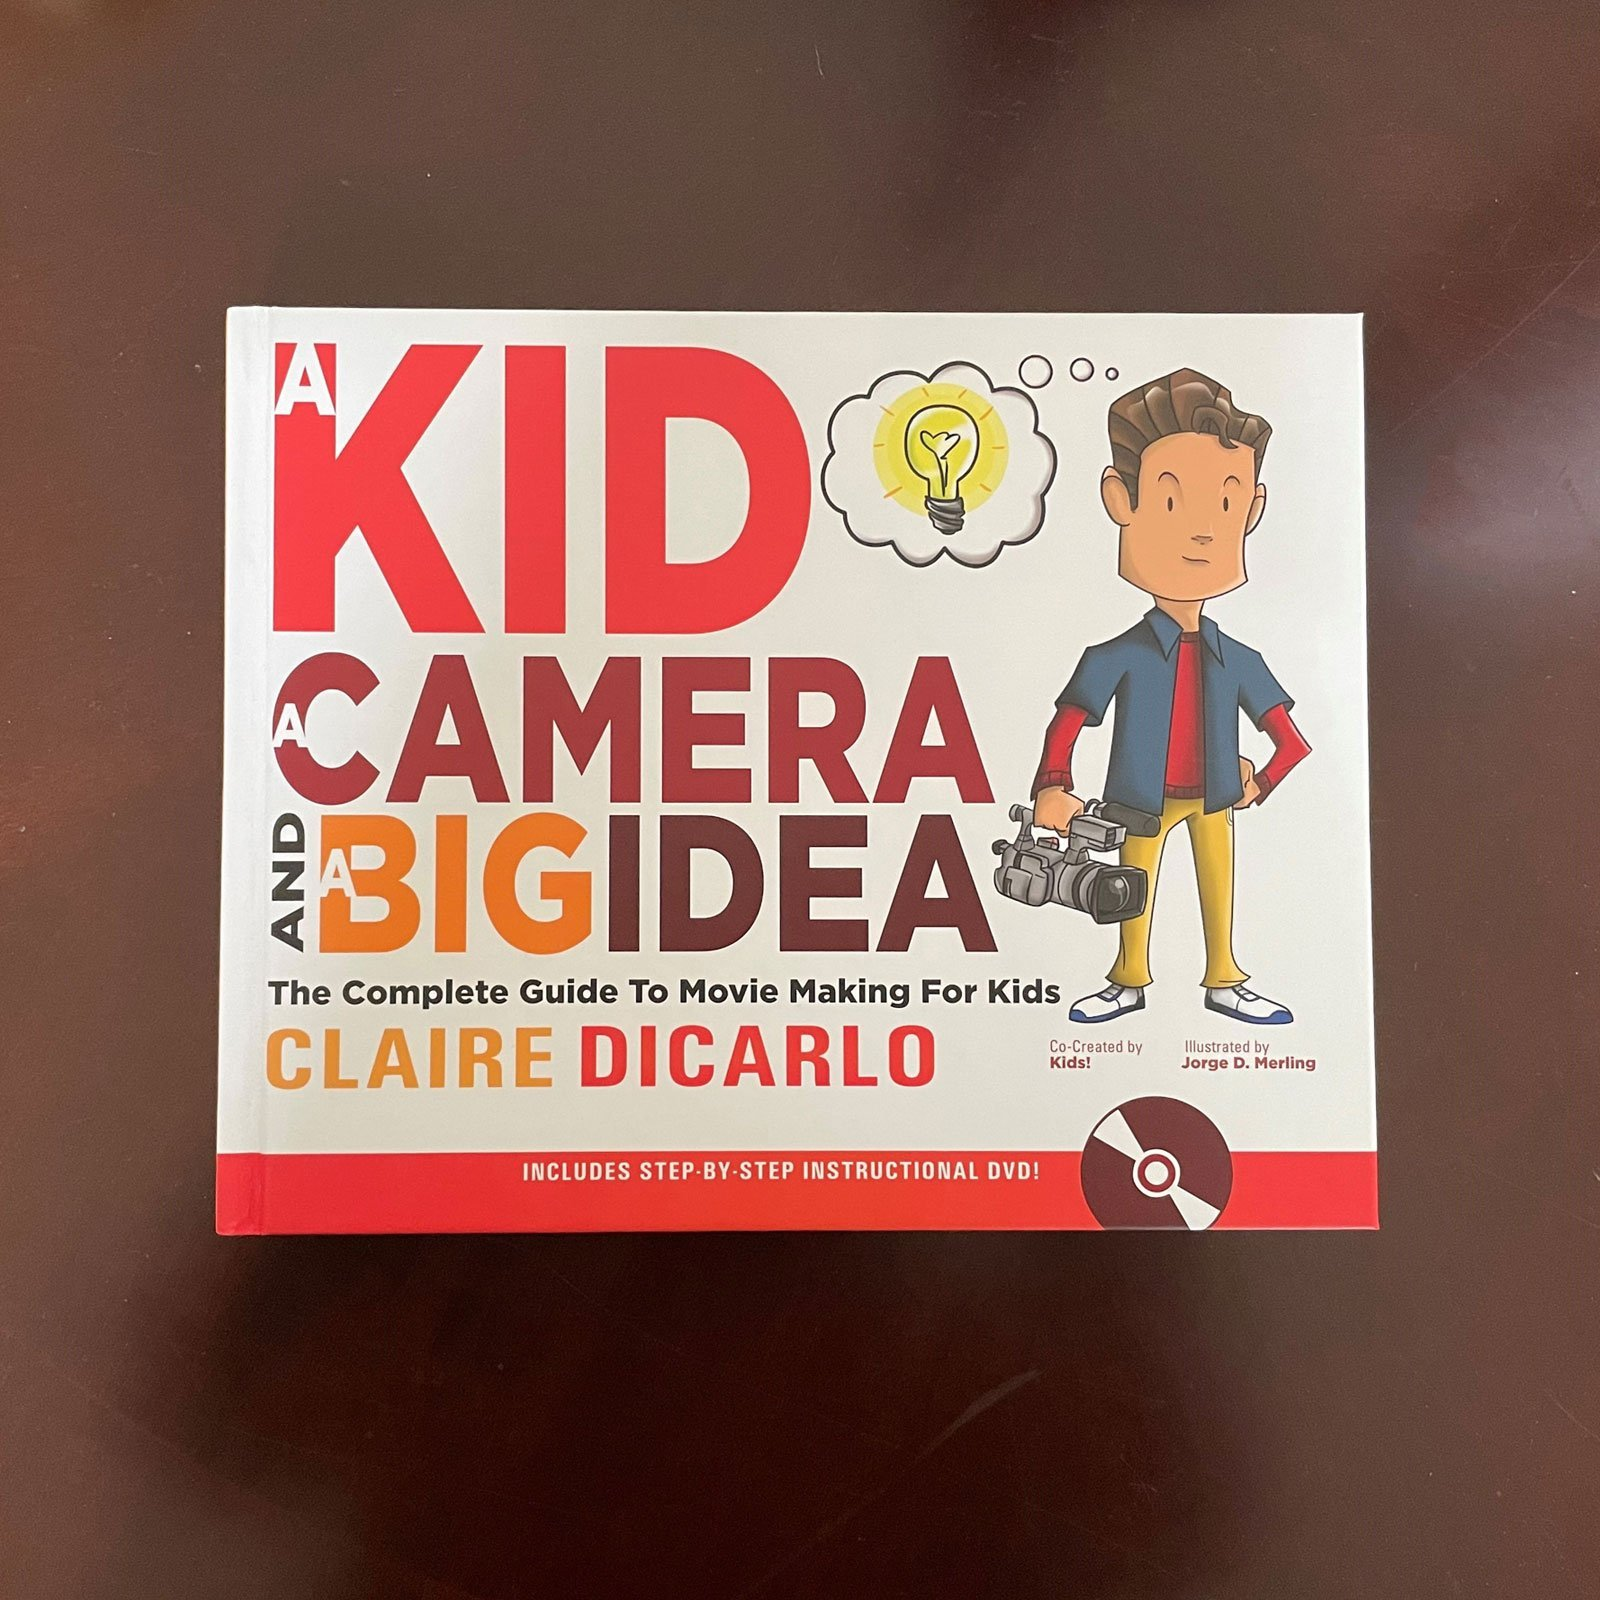 A Kid a Camera and a Big Idea: The Complete Guide to Movie Making for Kids, by Claire Dicarlo.